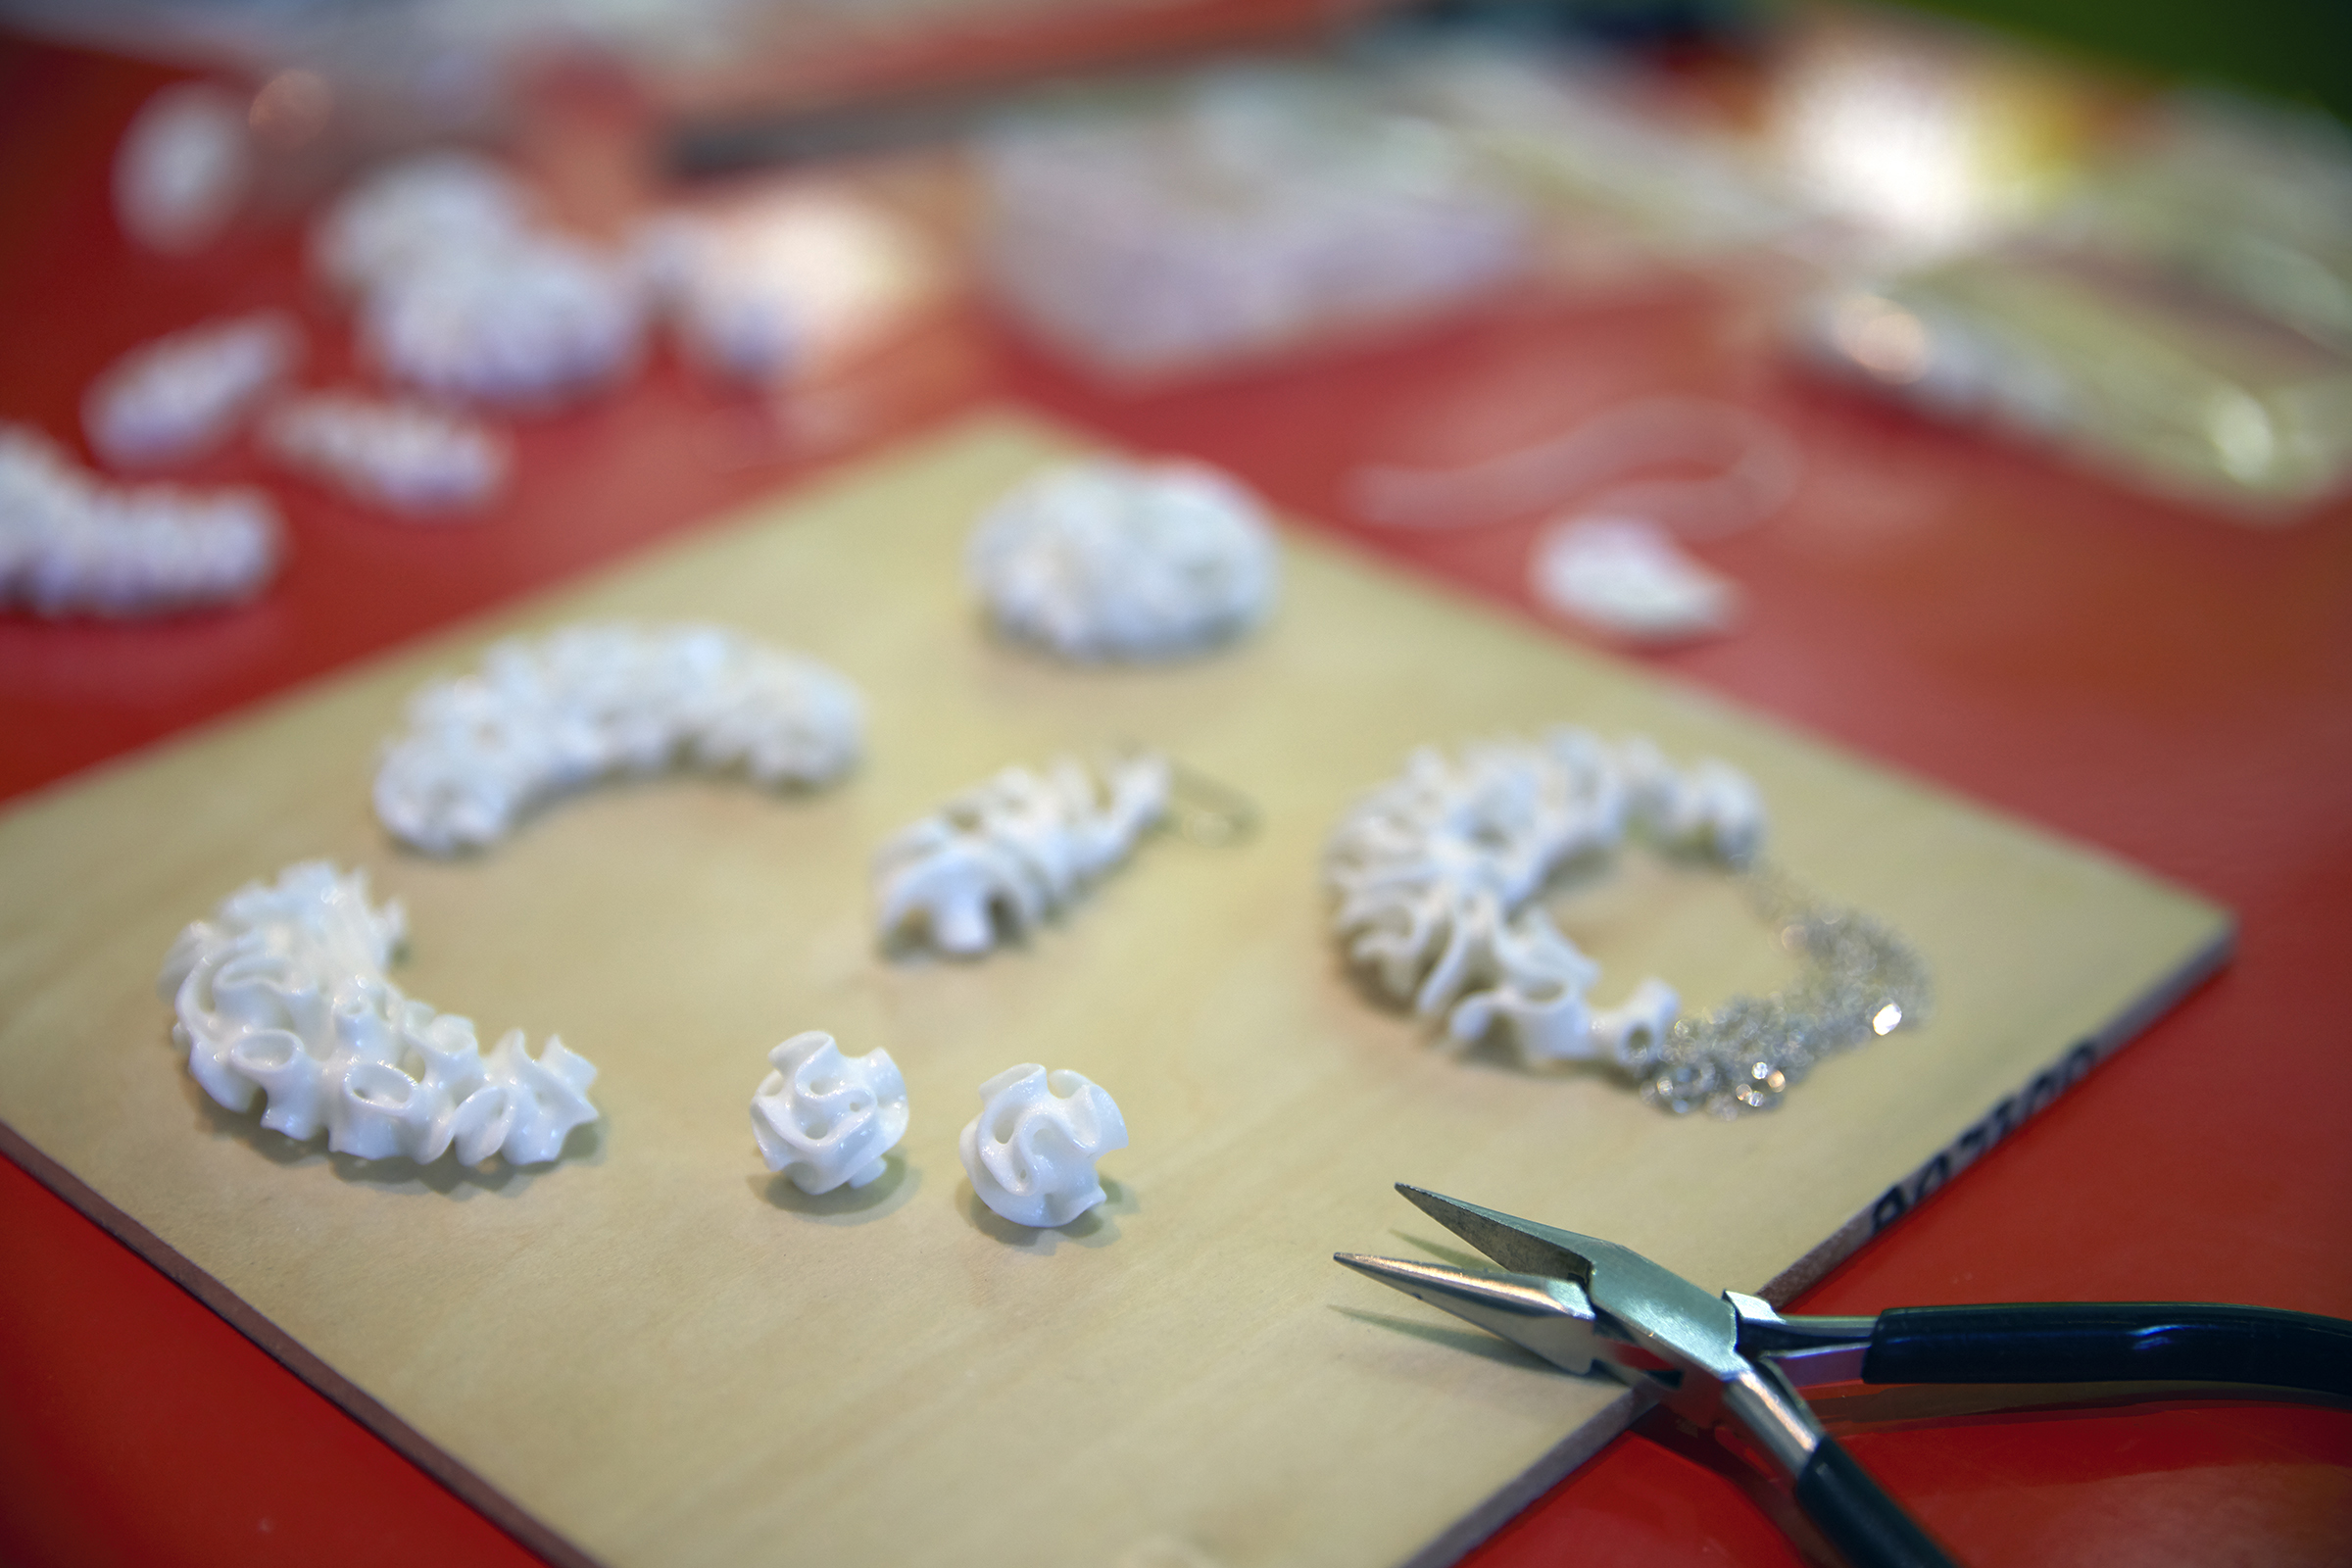 3D printed ceramic jewelry in Nervous System's studio.